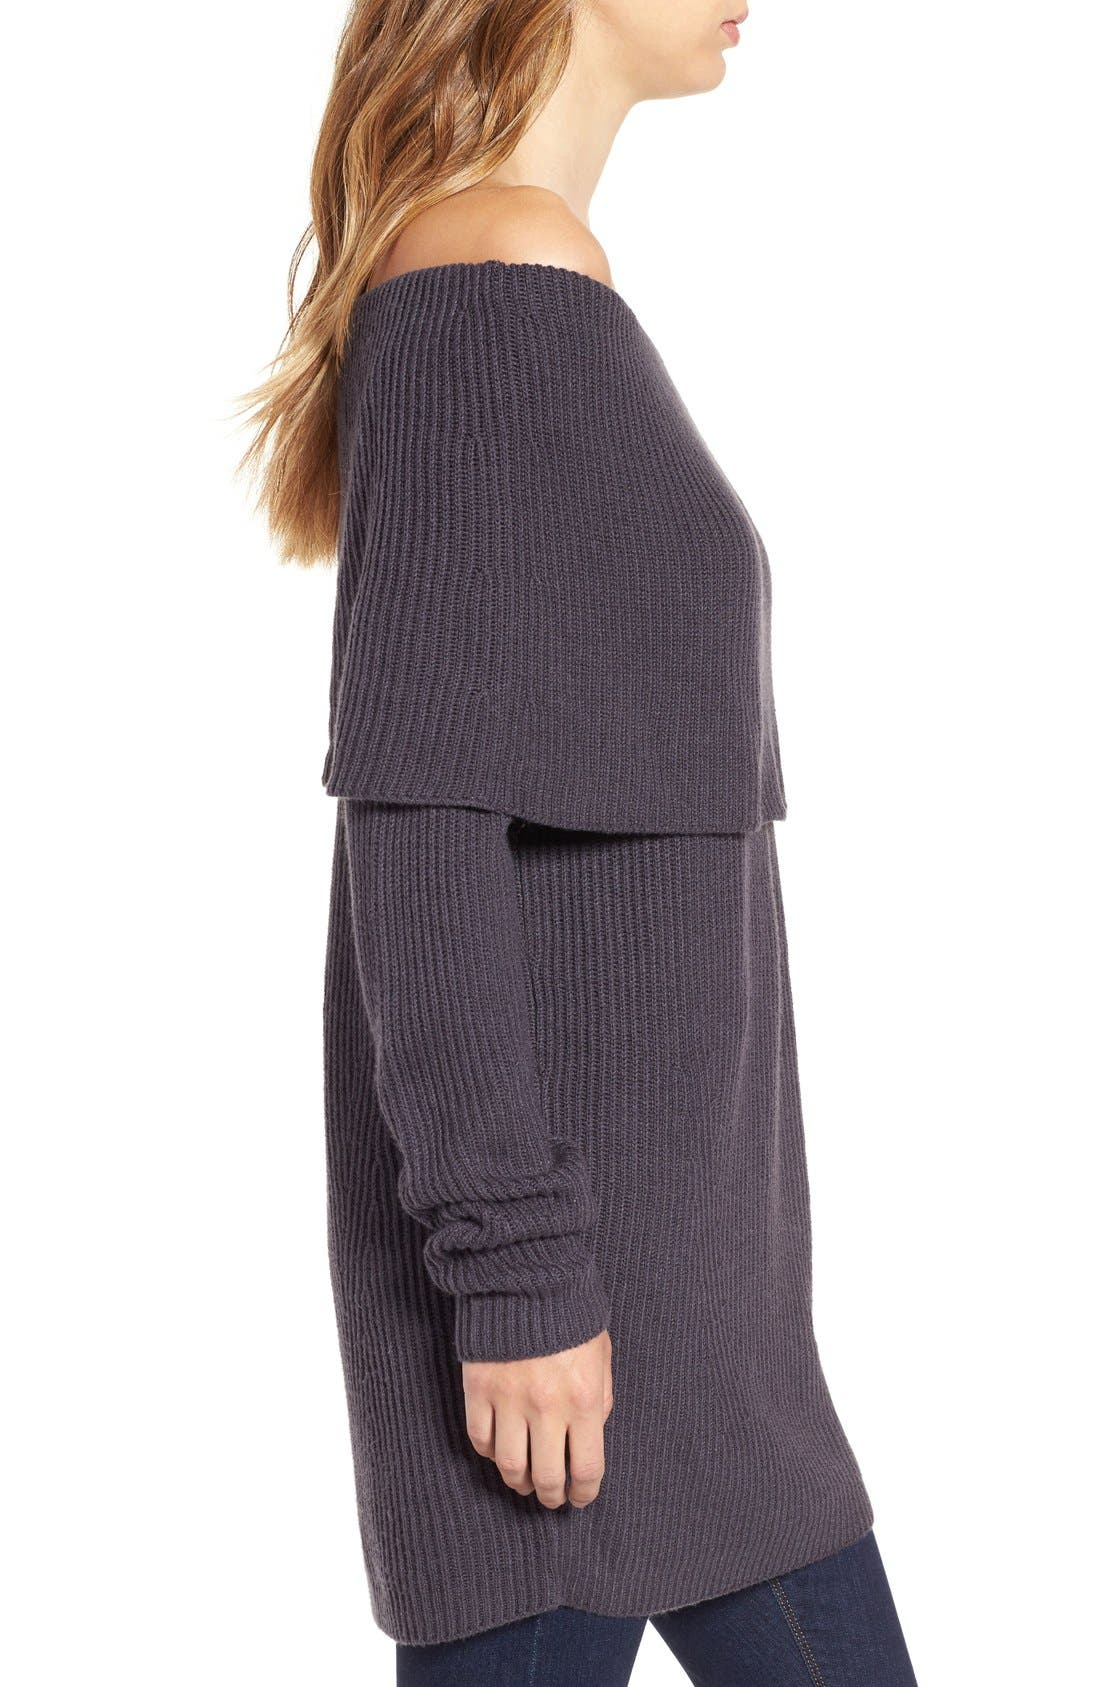 LEITH, Off the Shoulder Knit Sweater, Alternate thumbnail 2, color, 021